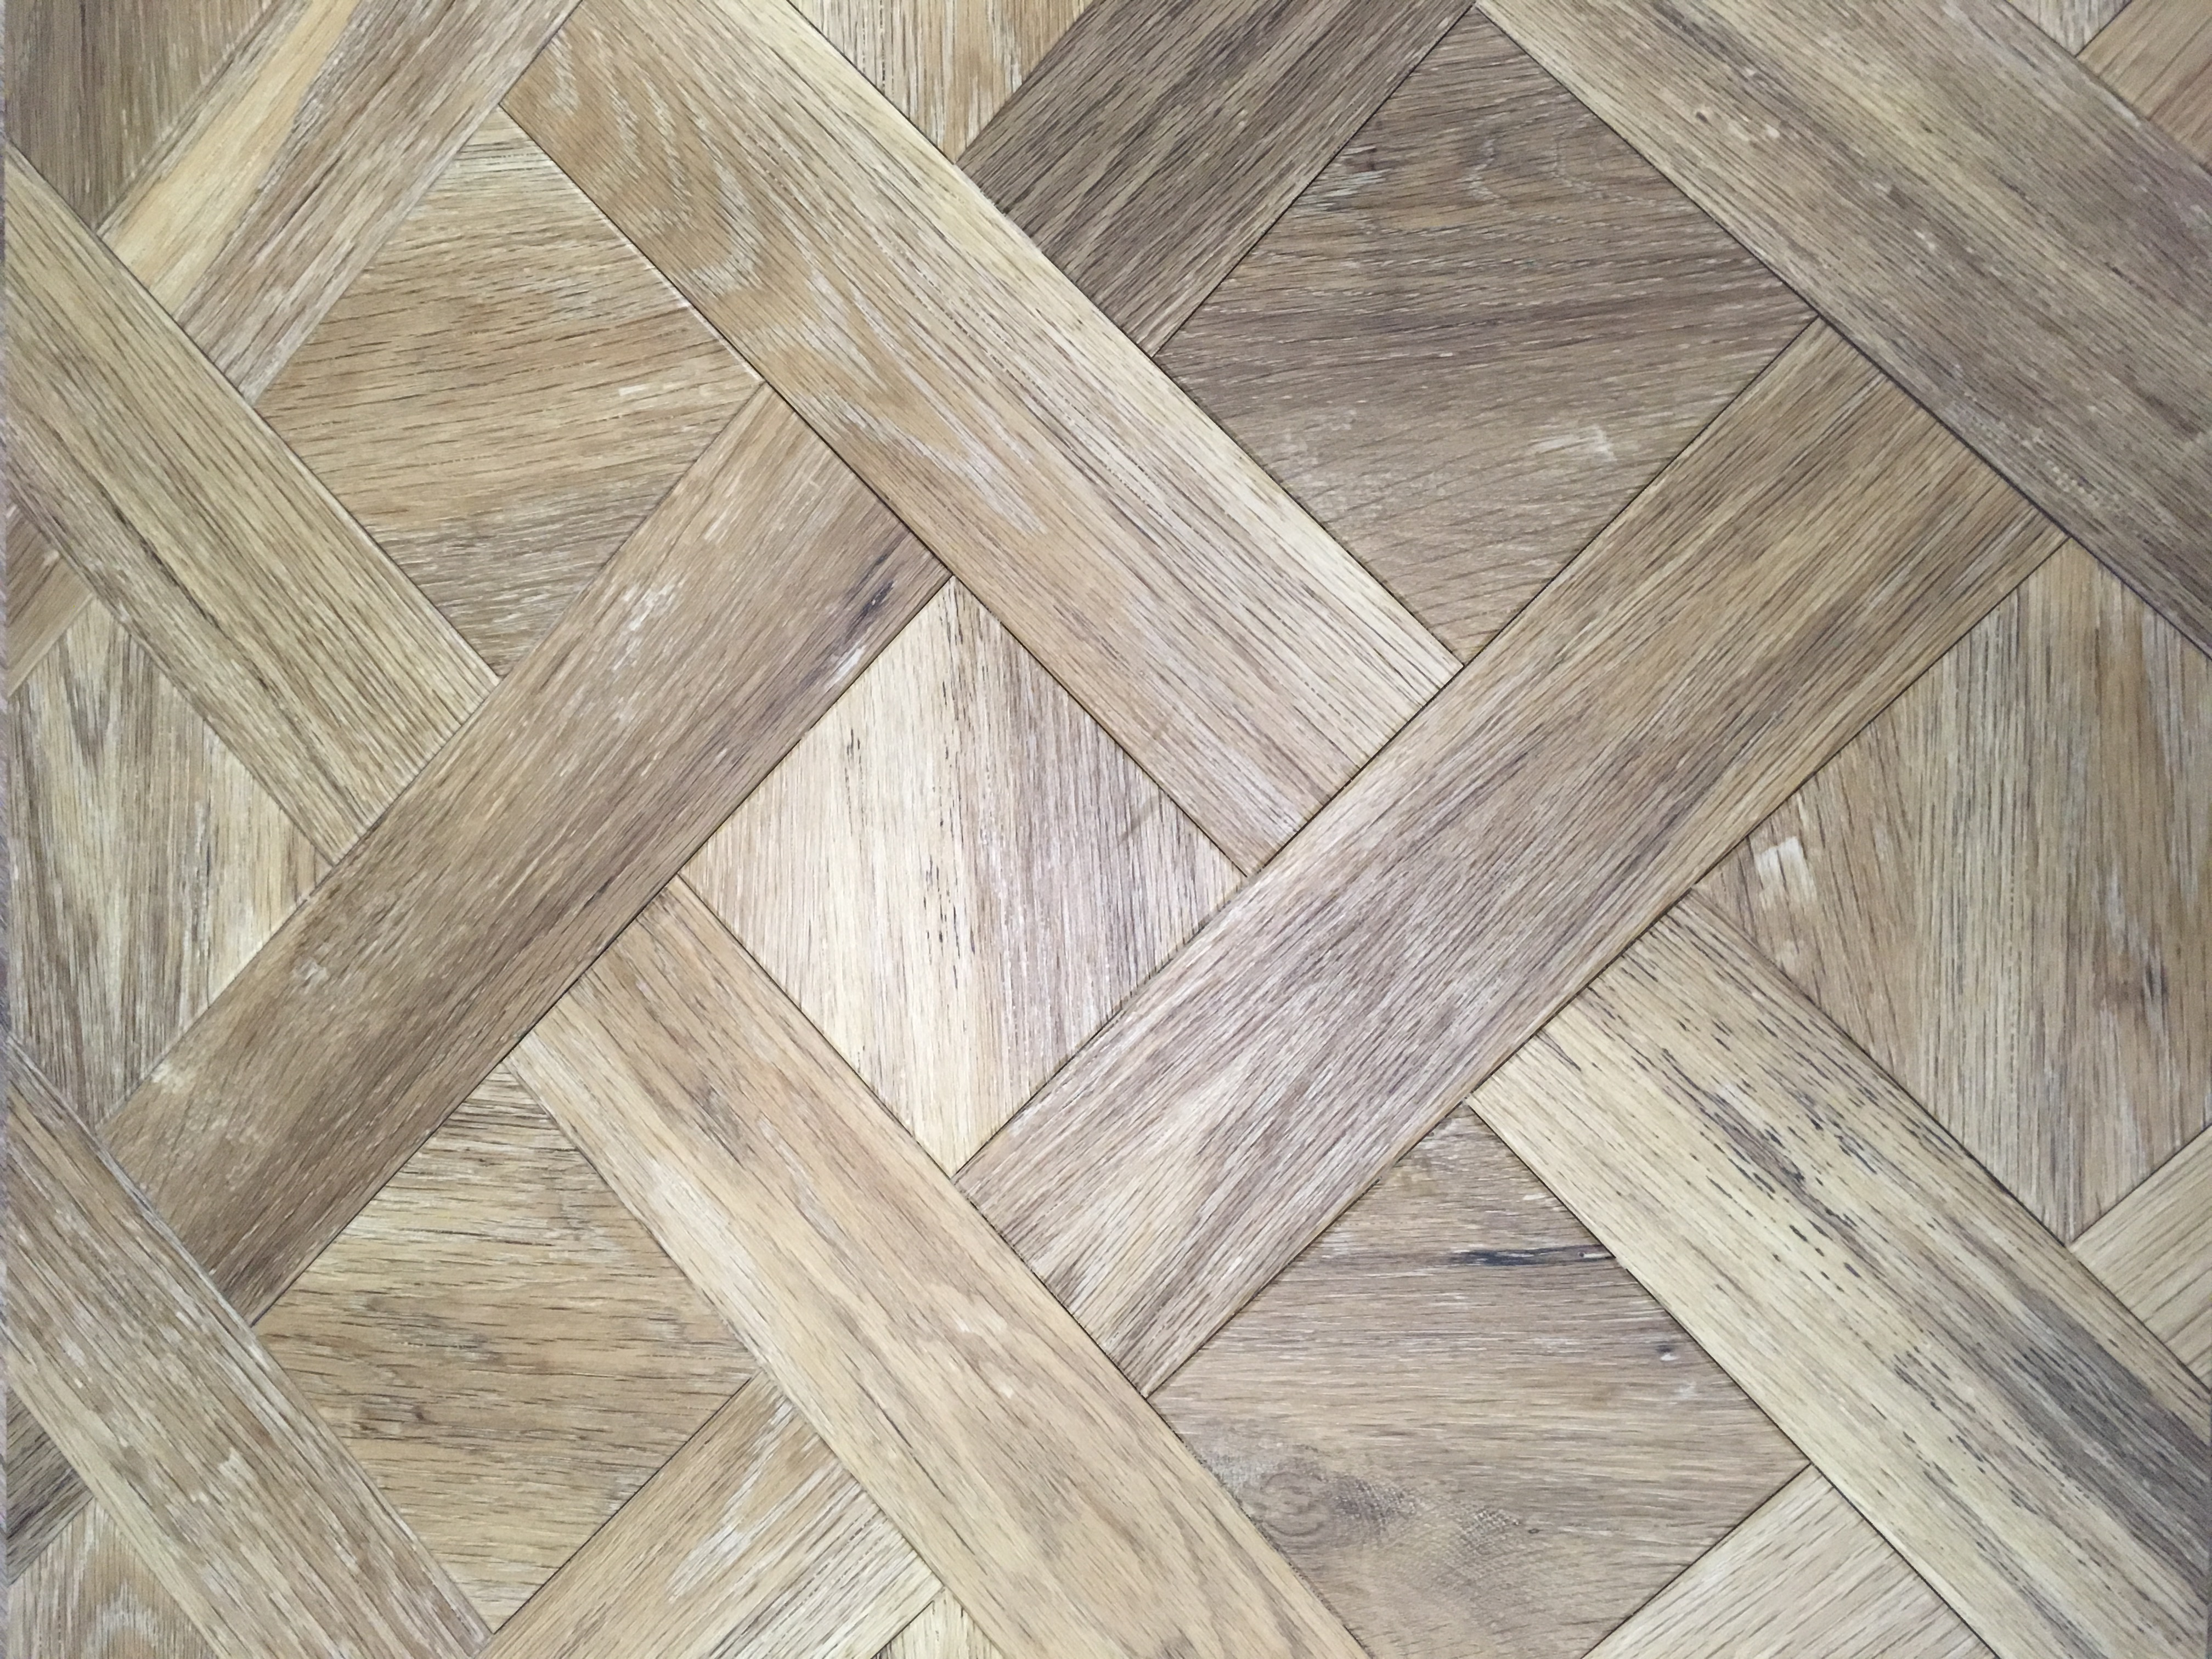 carpet-fit-wales-cynon-valley-aberdare-south-aberaman-experienced-skilled-great-customer-service-flooring-OFFER-amtico-worn-oak